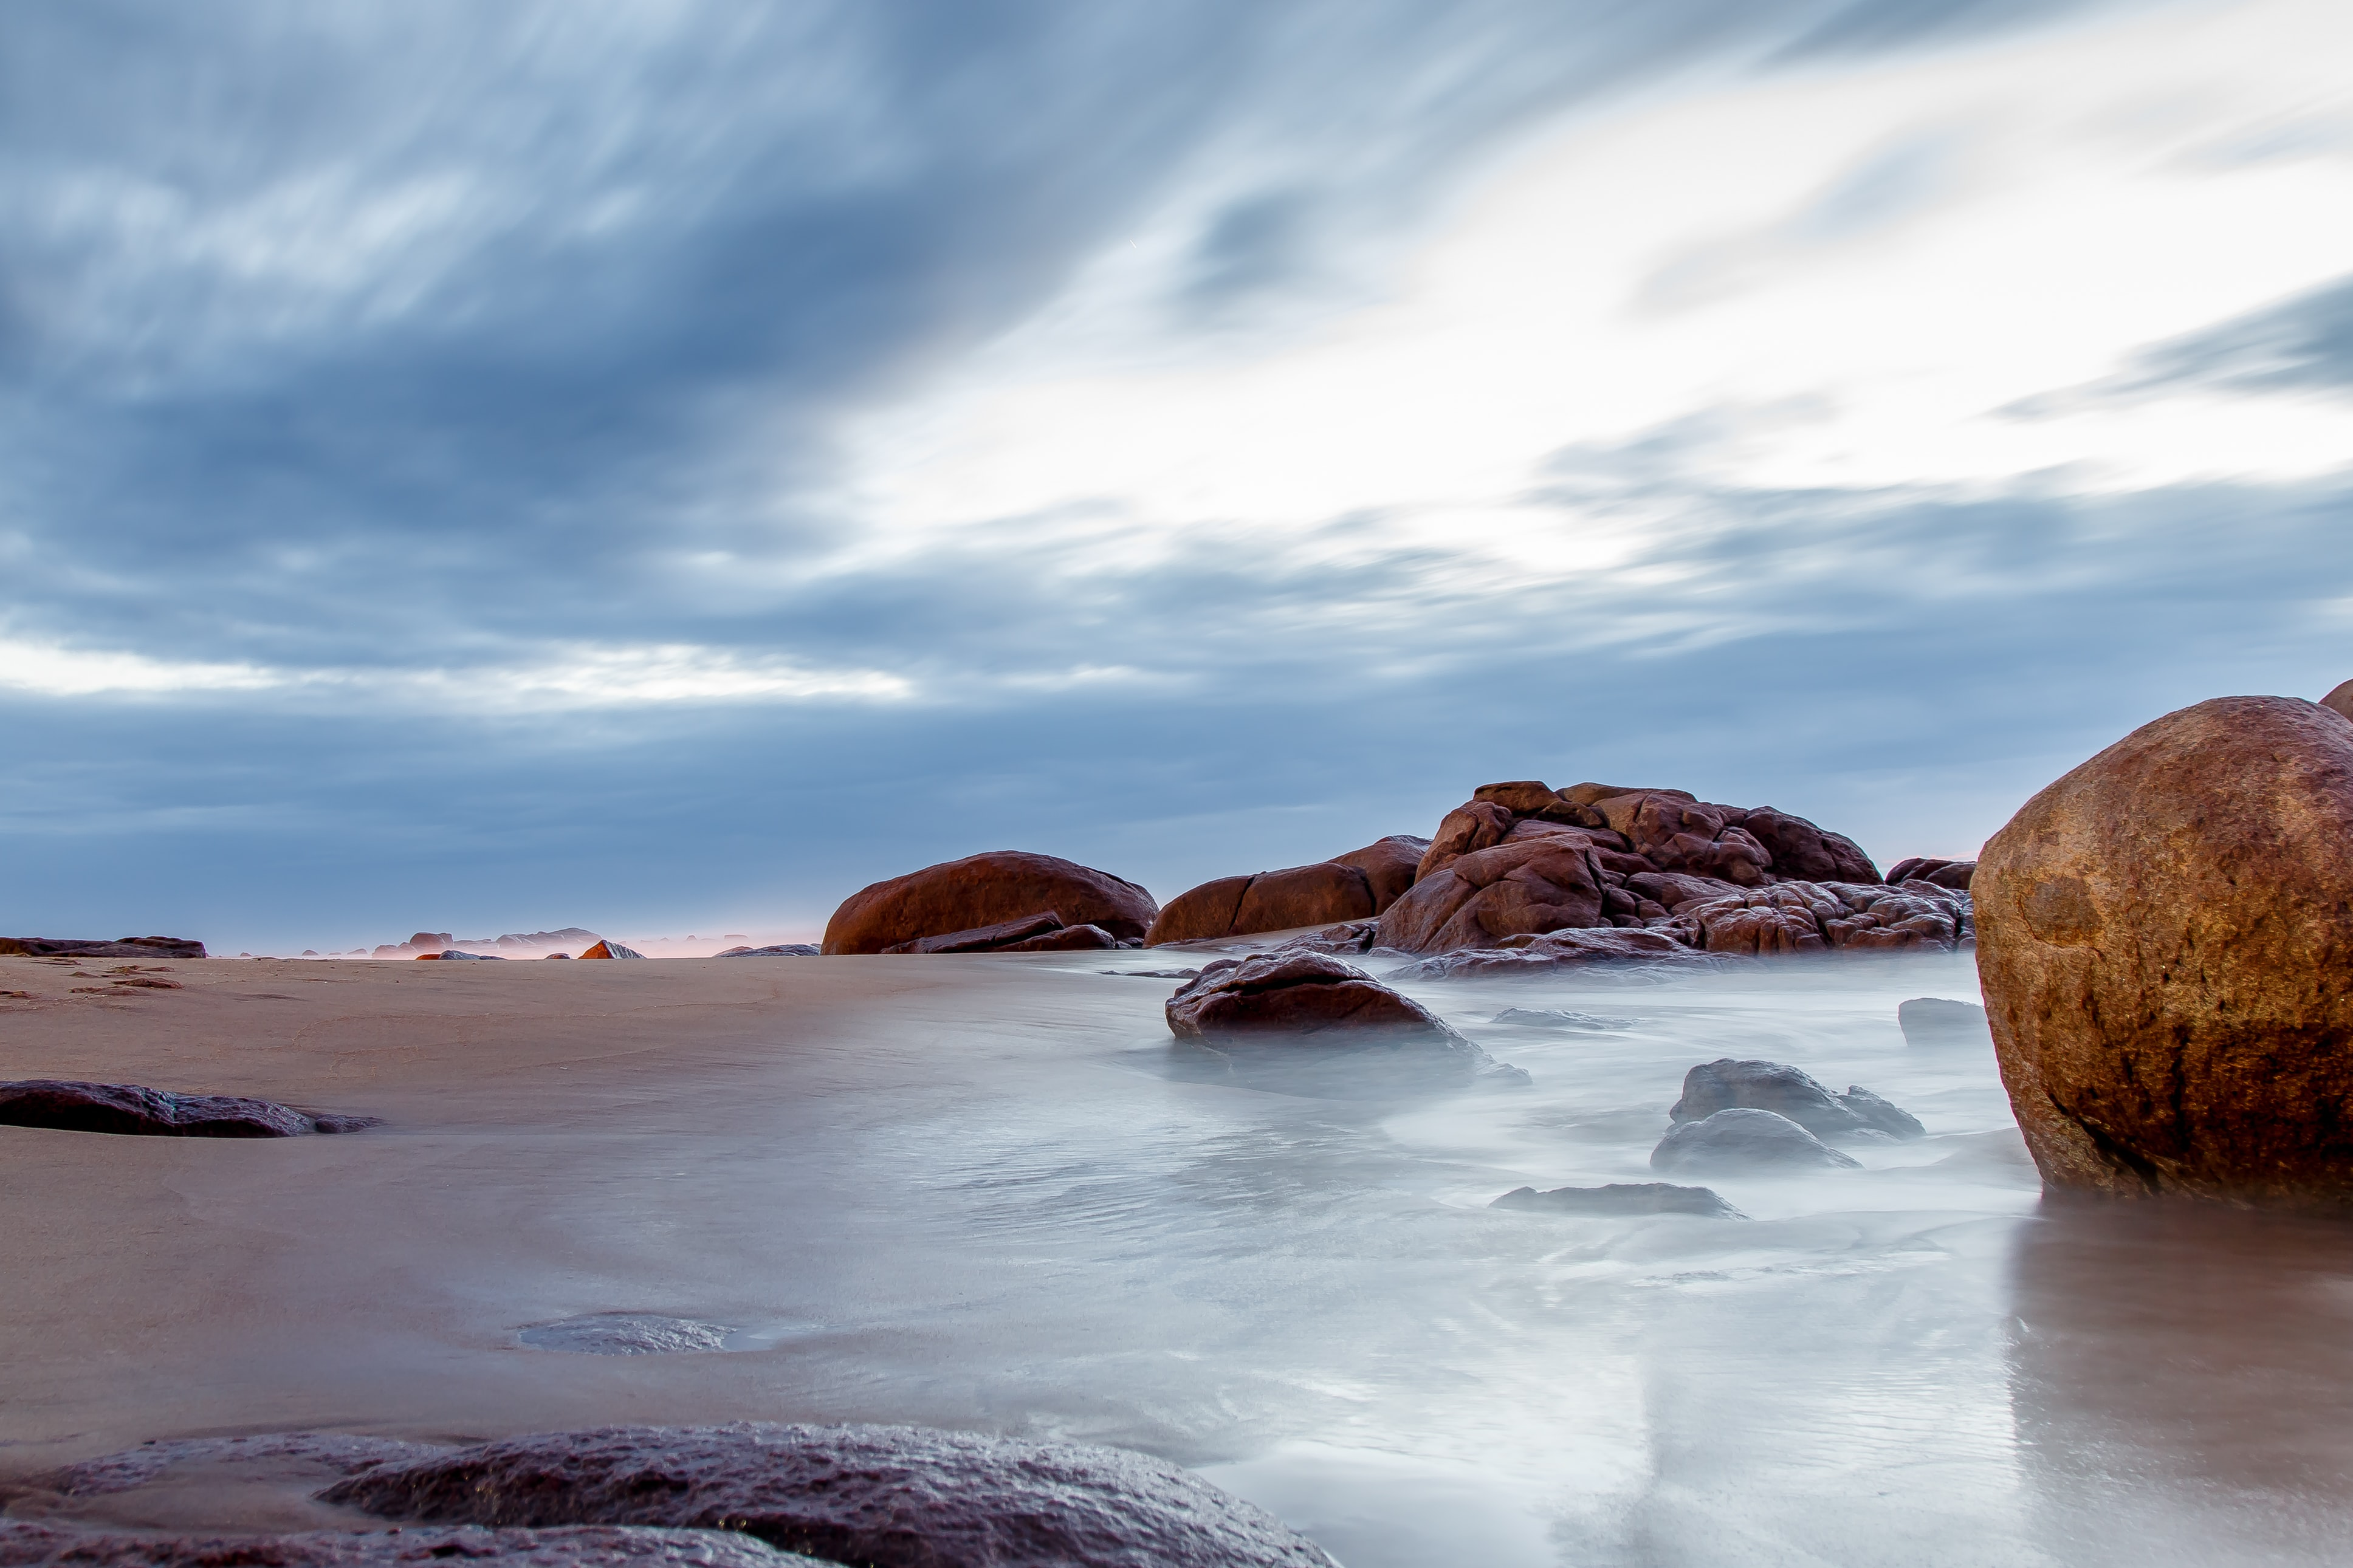 Smooth round rocks in wet sand and shallow sea water